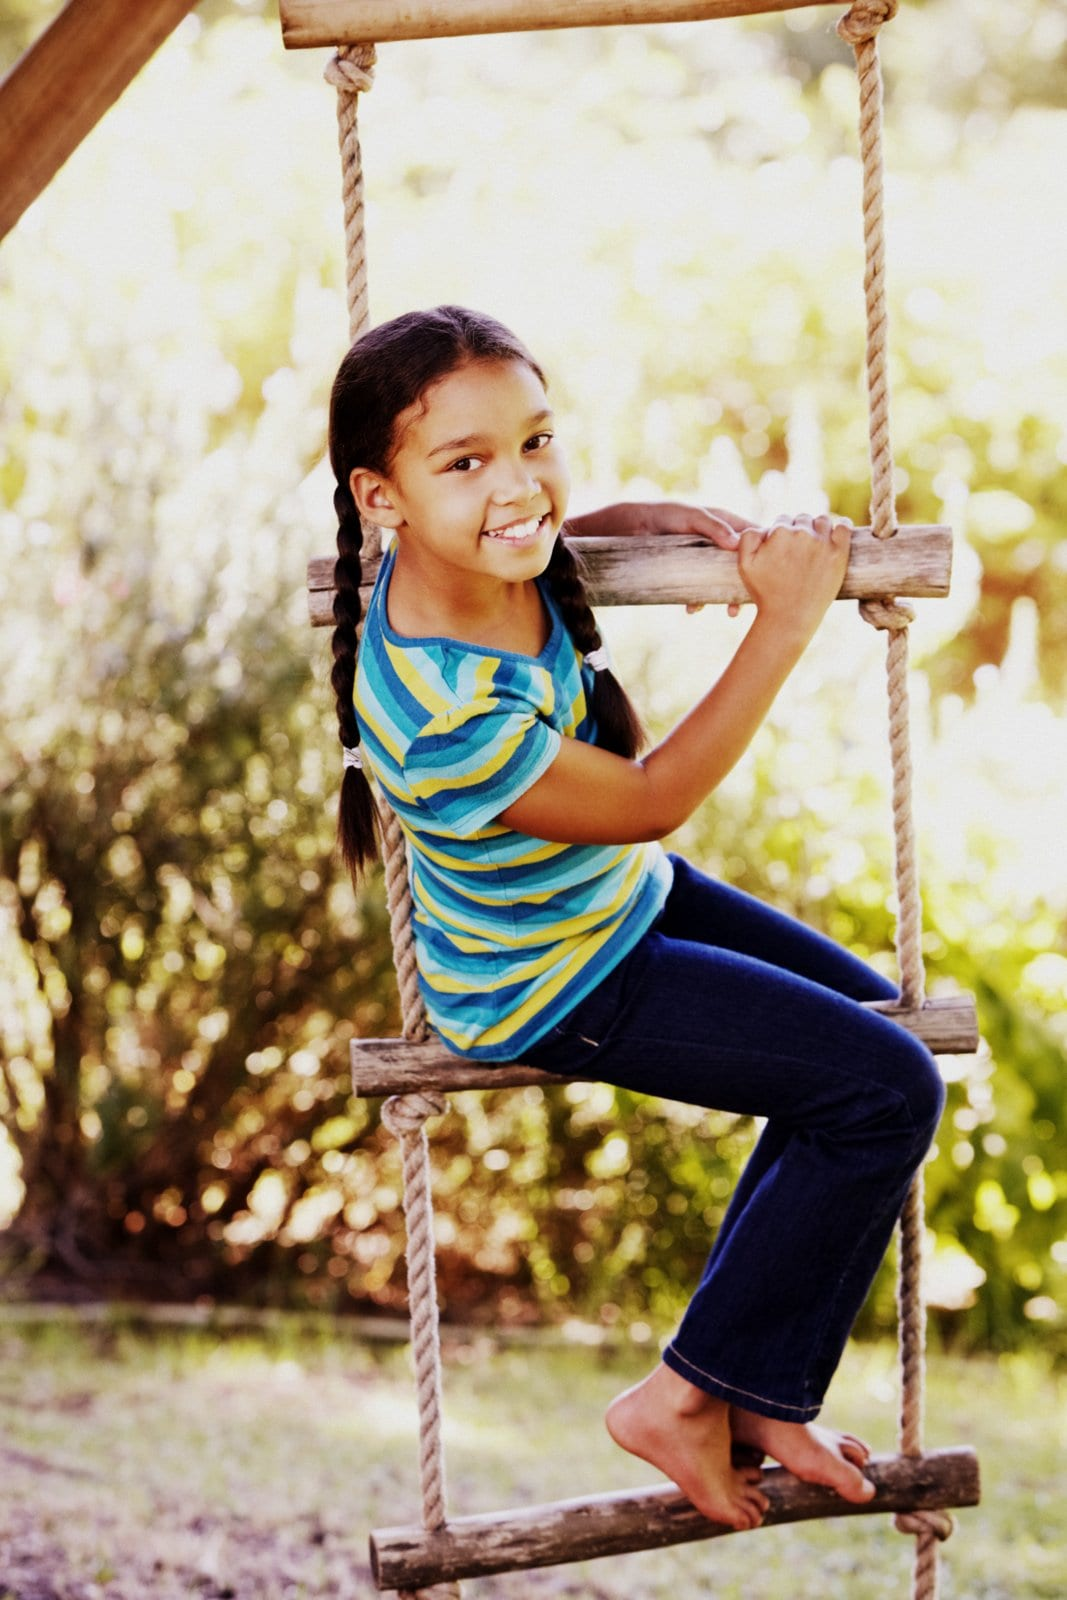 Girl on a treehouse rope ladder